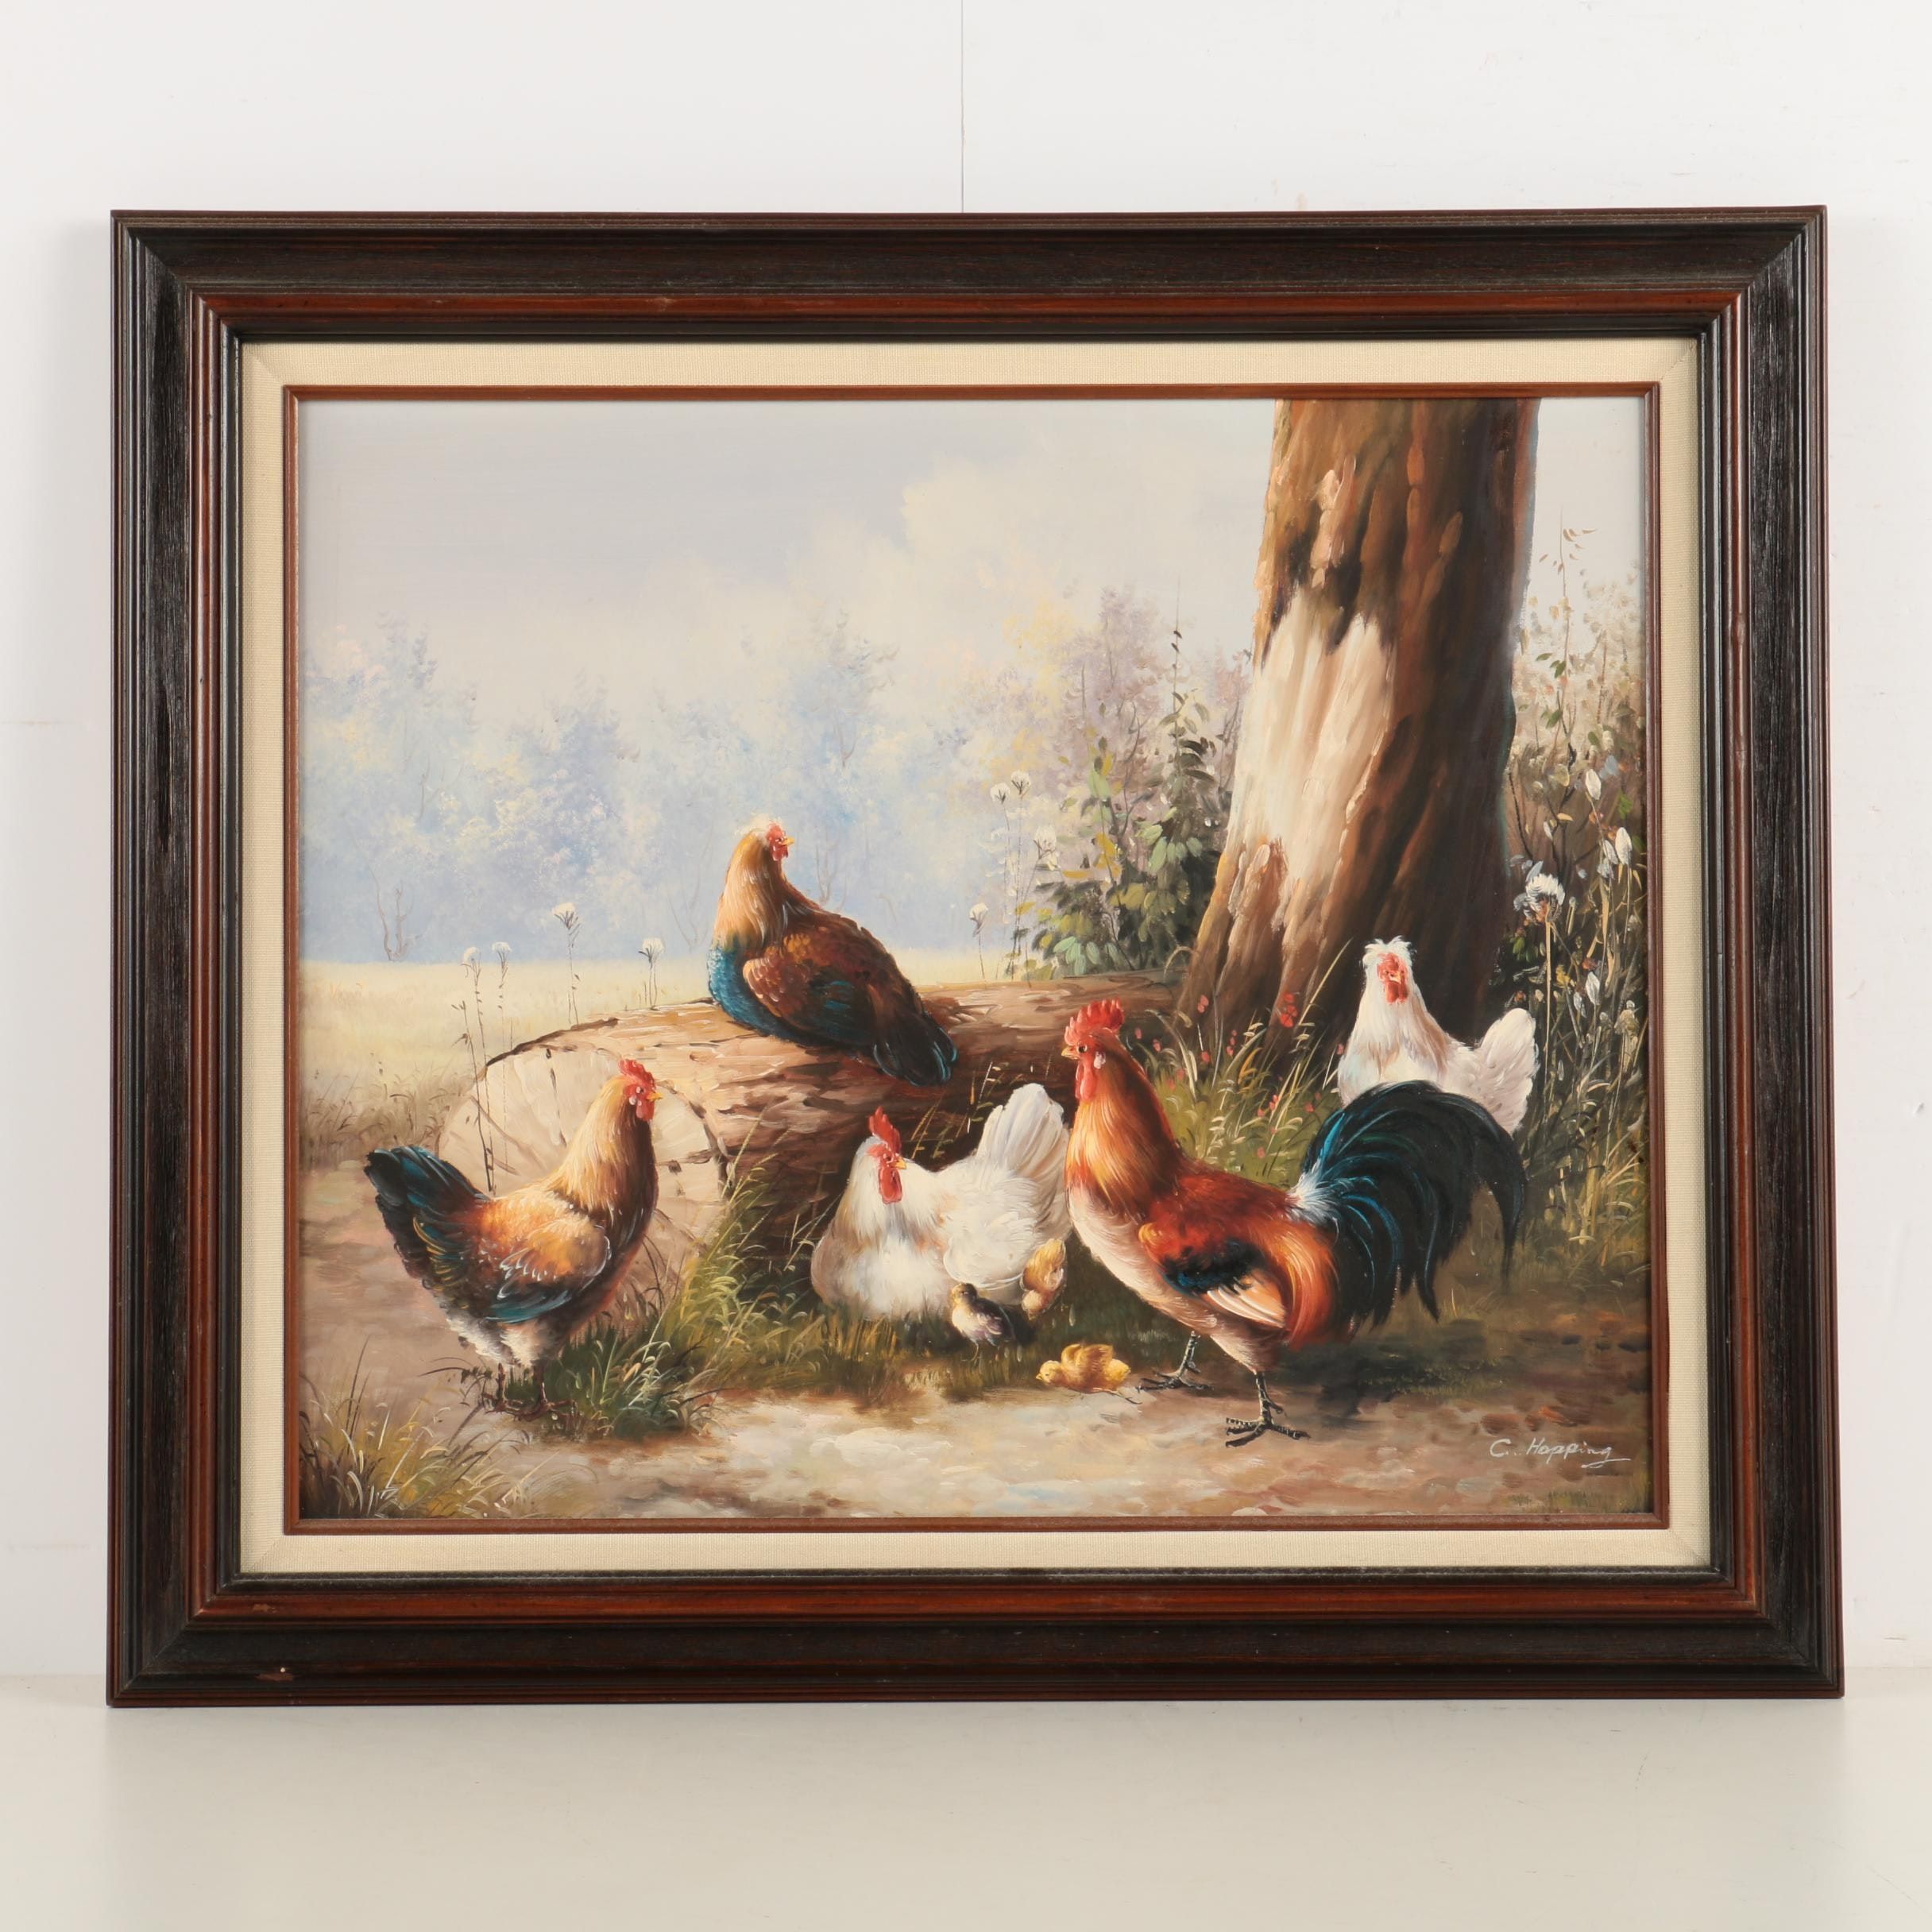 C. Hopping Oil Painting on Canvas of Colorful Chickens in a Country Landscape